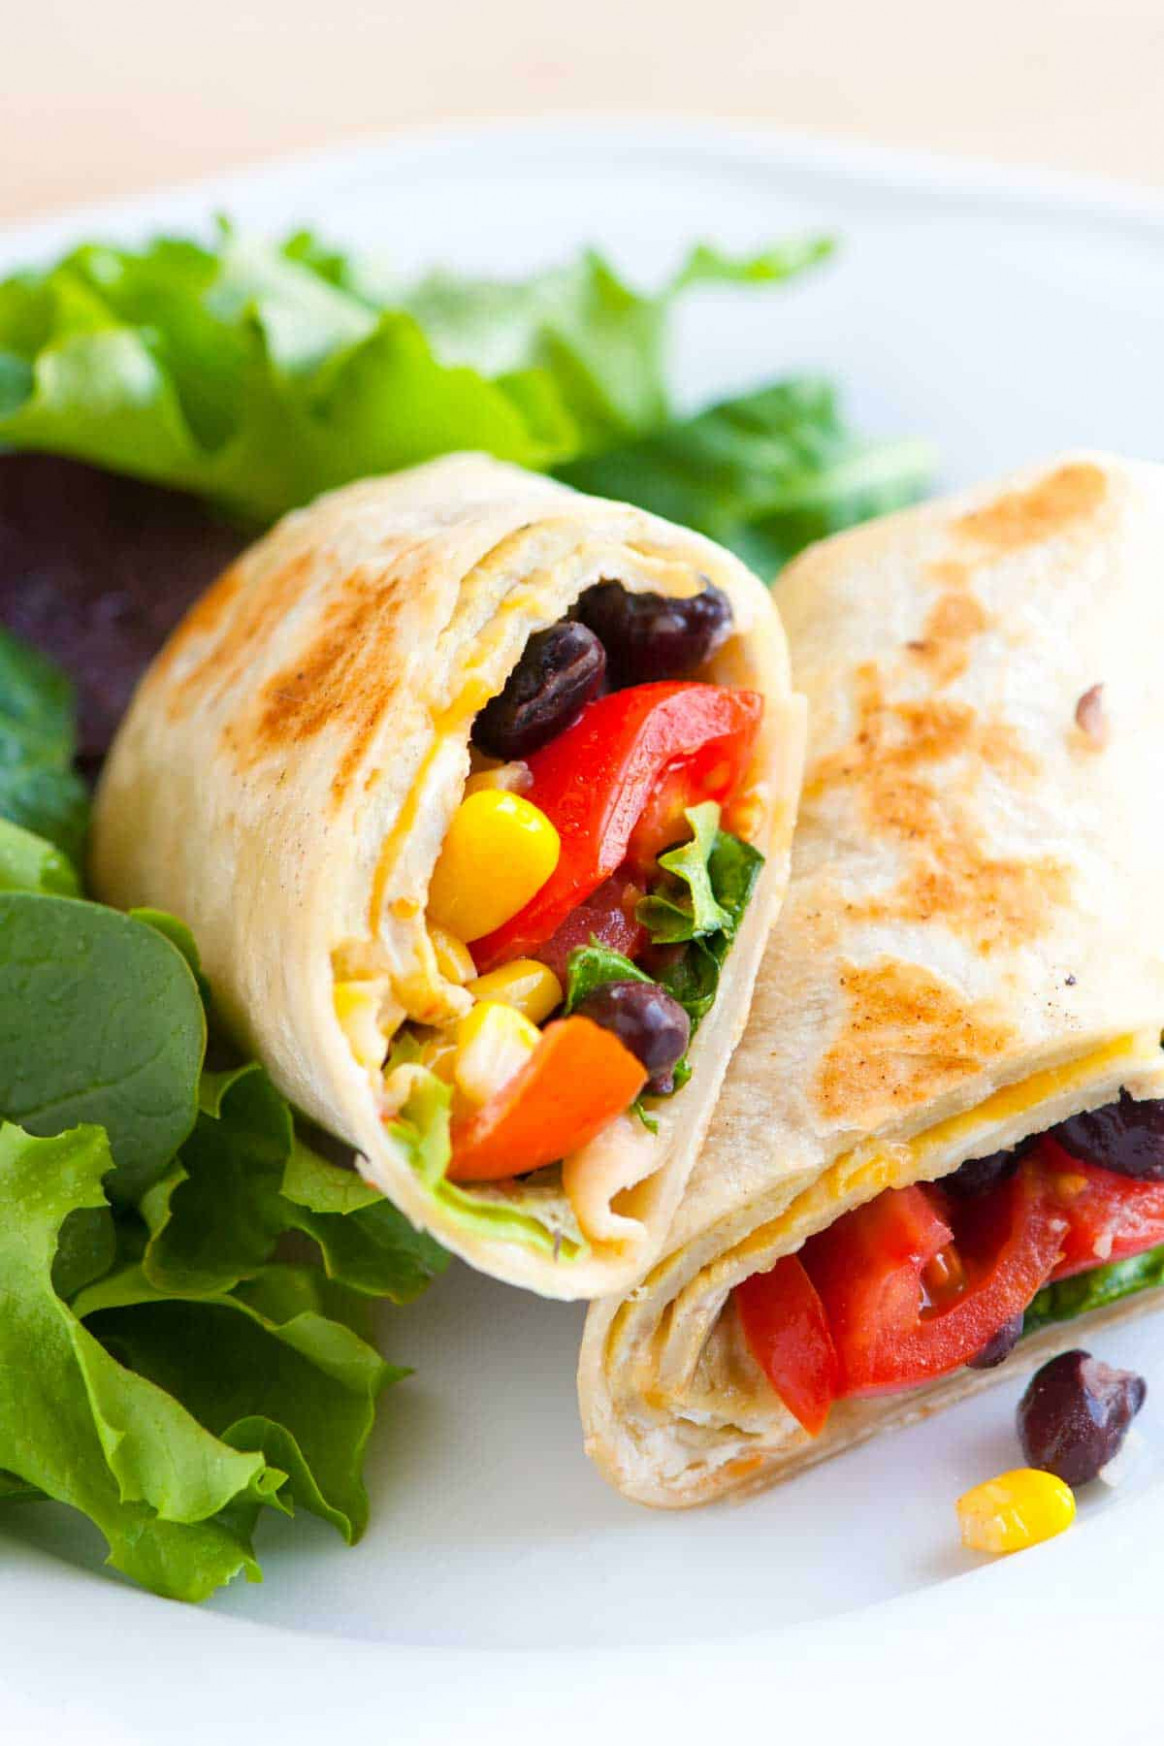 Meatless Black Bean, Egg and Corn Wraps - vegetarian wraps and rolls recipes